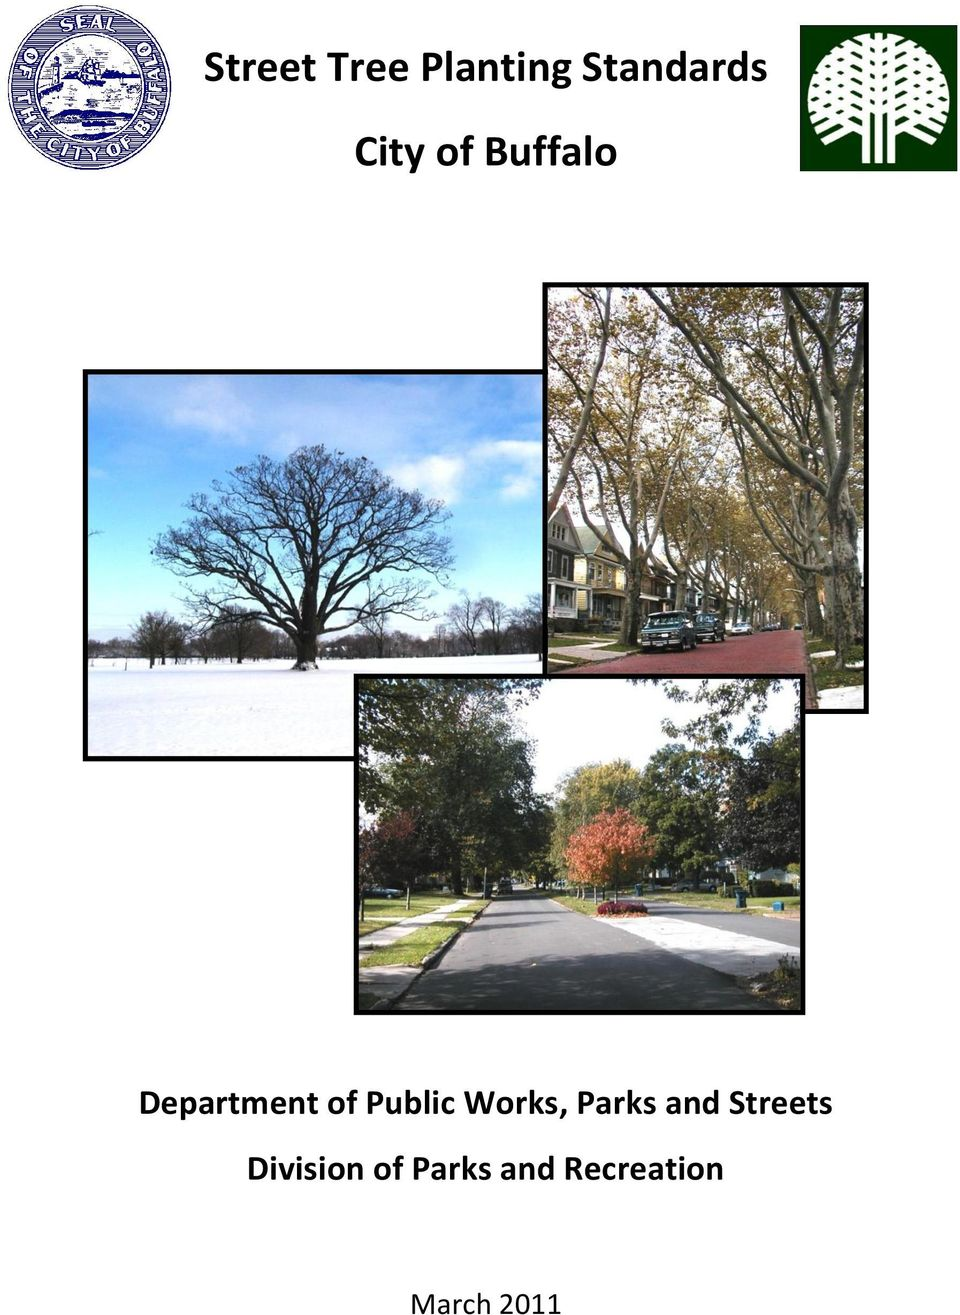 Public Works, Parks and Streets